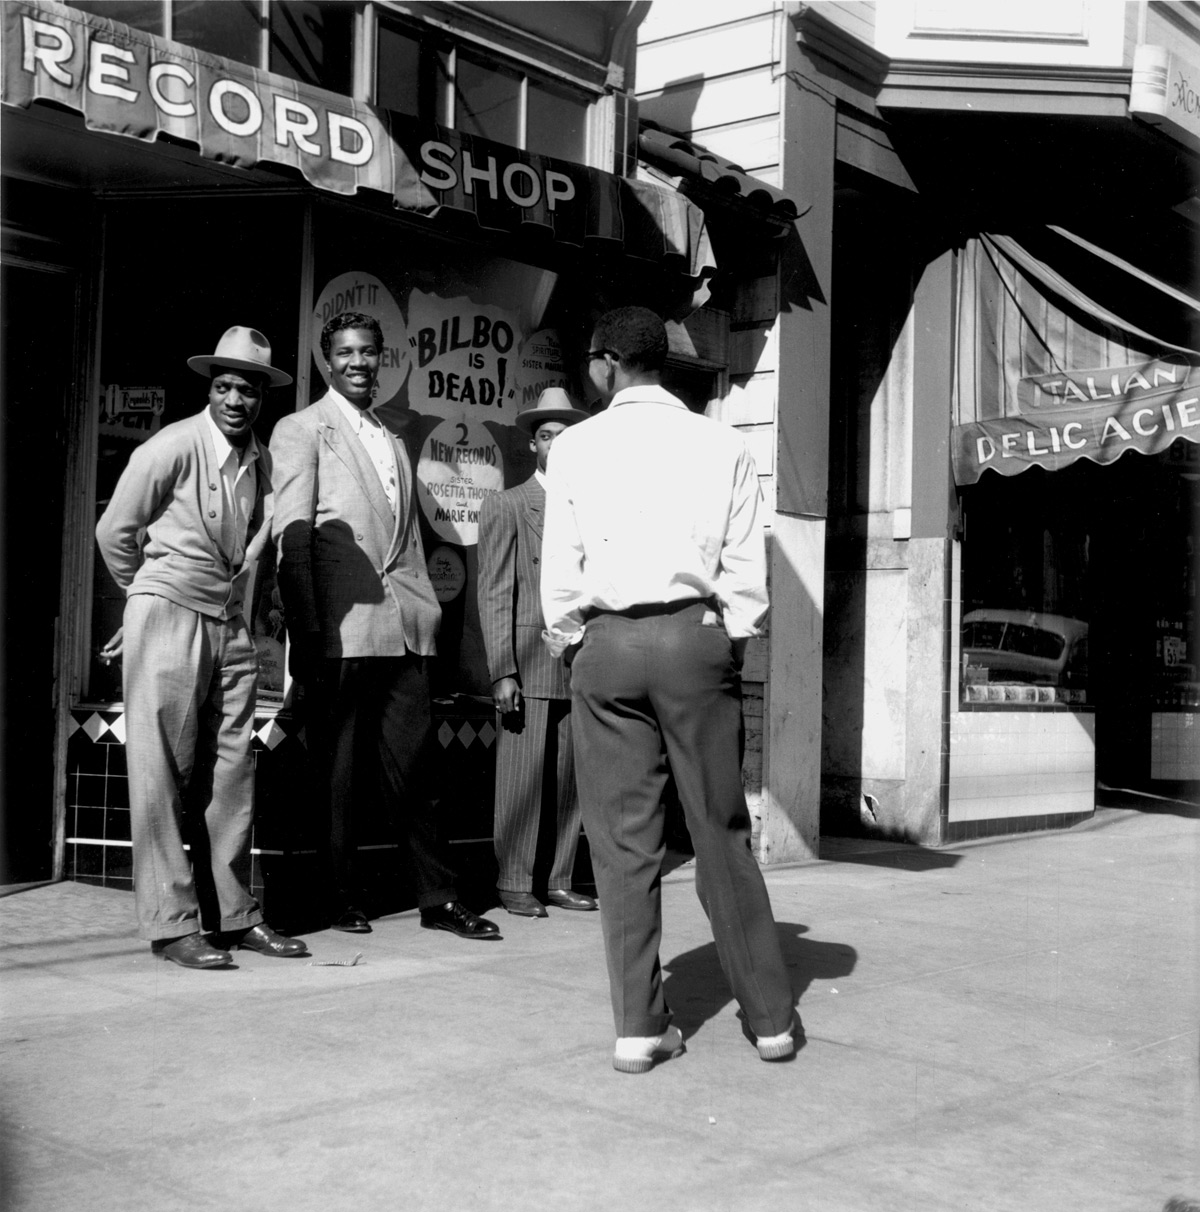 File Melrose Record Shop At 1226 Fillmore St C 1950 By